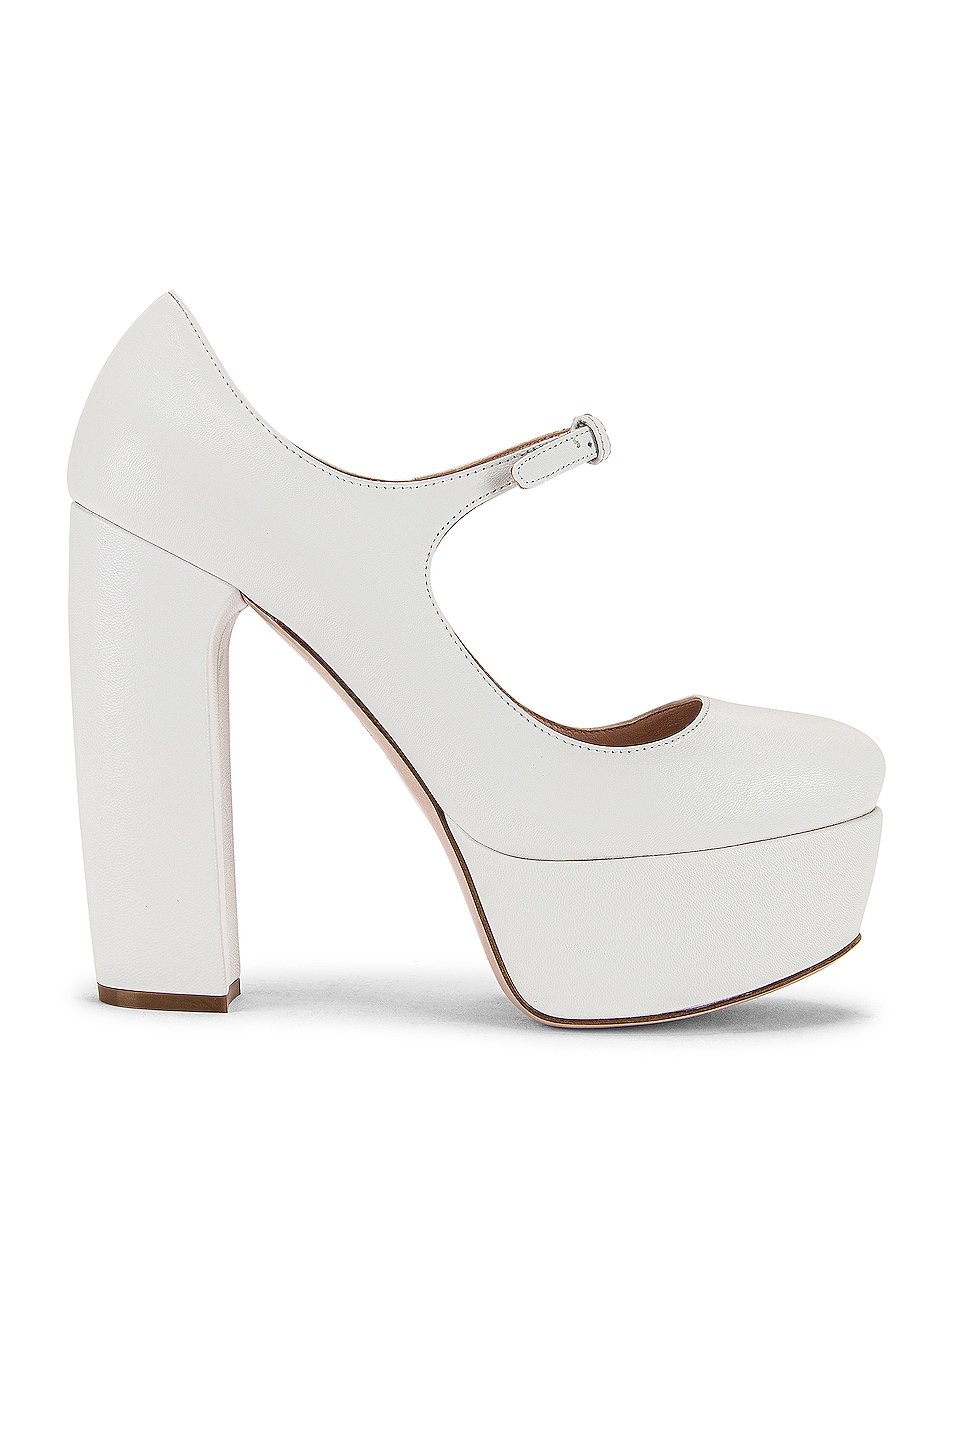 Image 1 of Miu Miu Plain Mary Jane Platform Heels in White